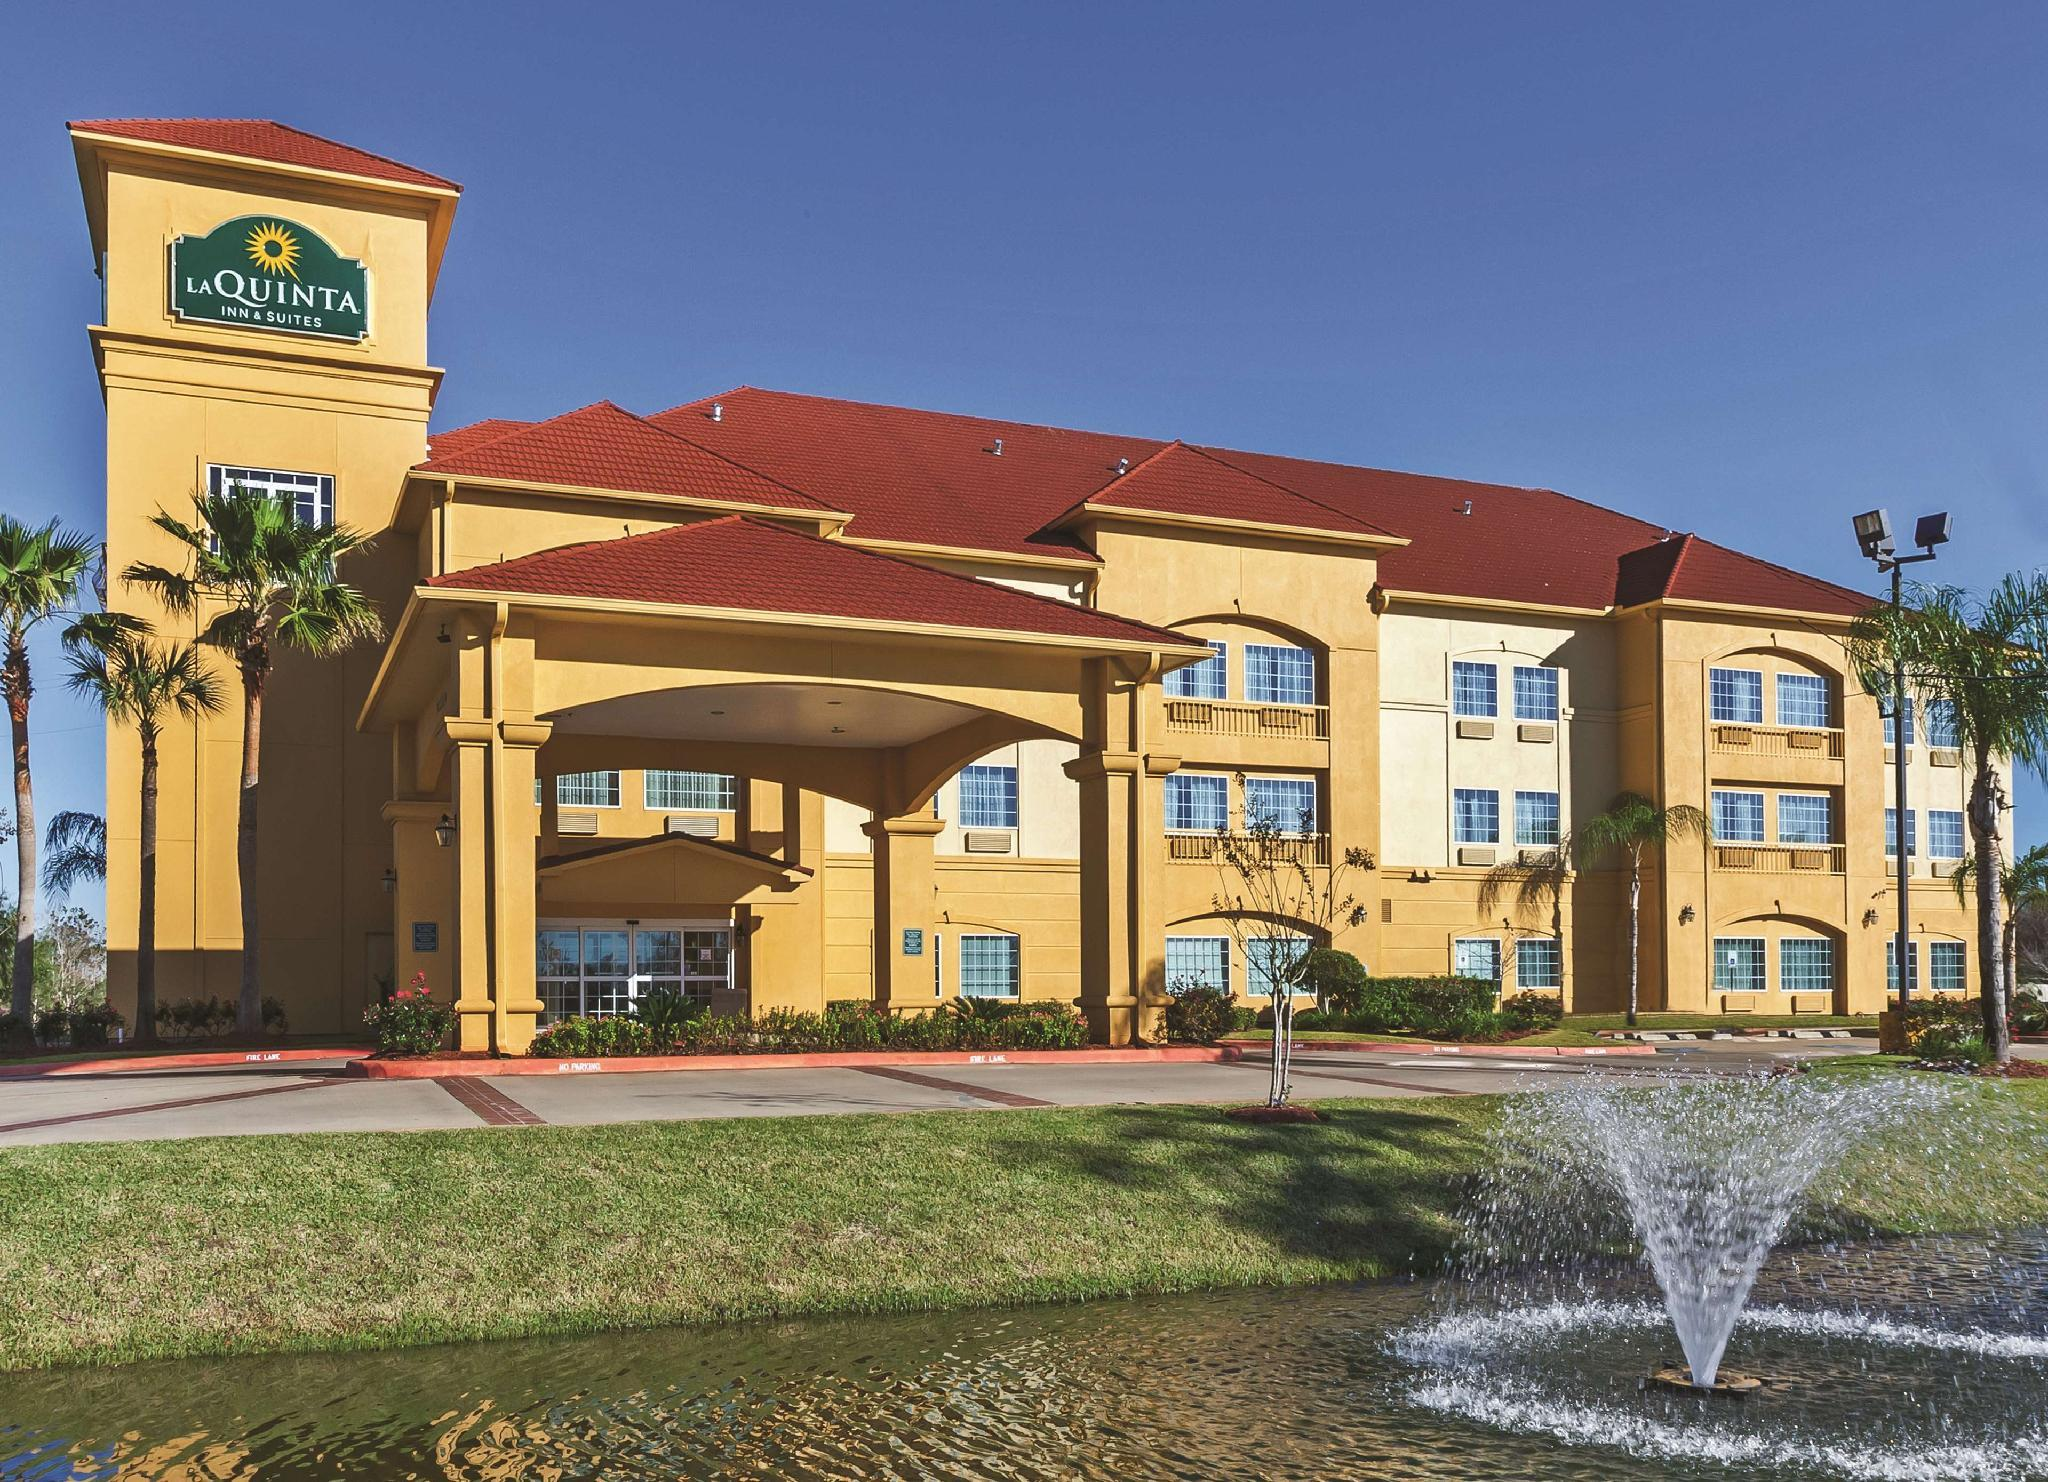 La Quinta Inn And Suites By Wyndham Pearland